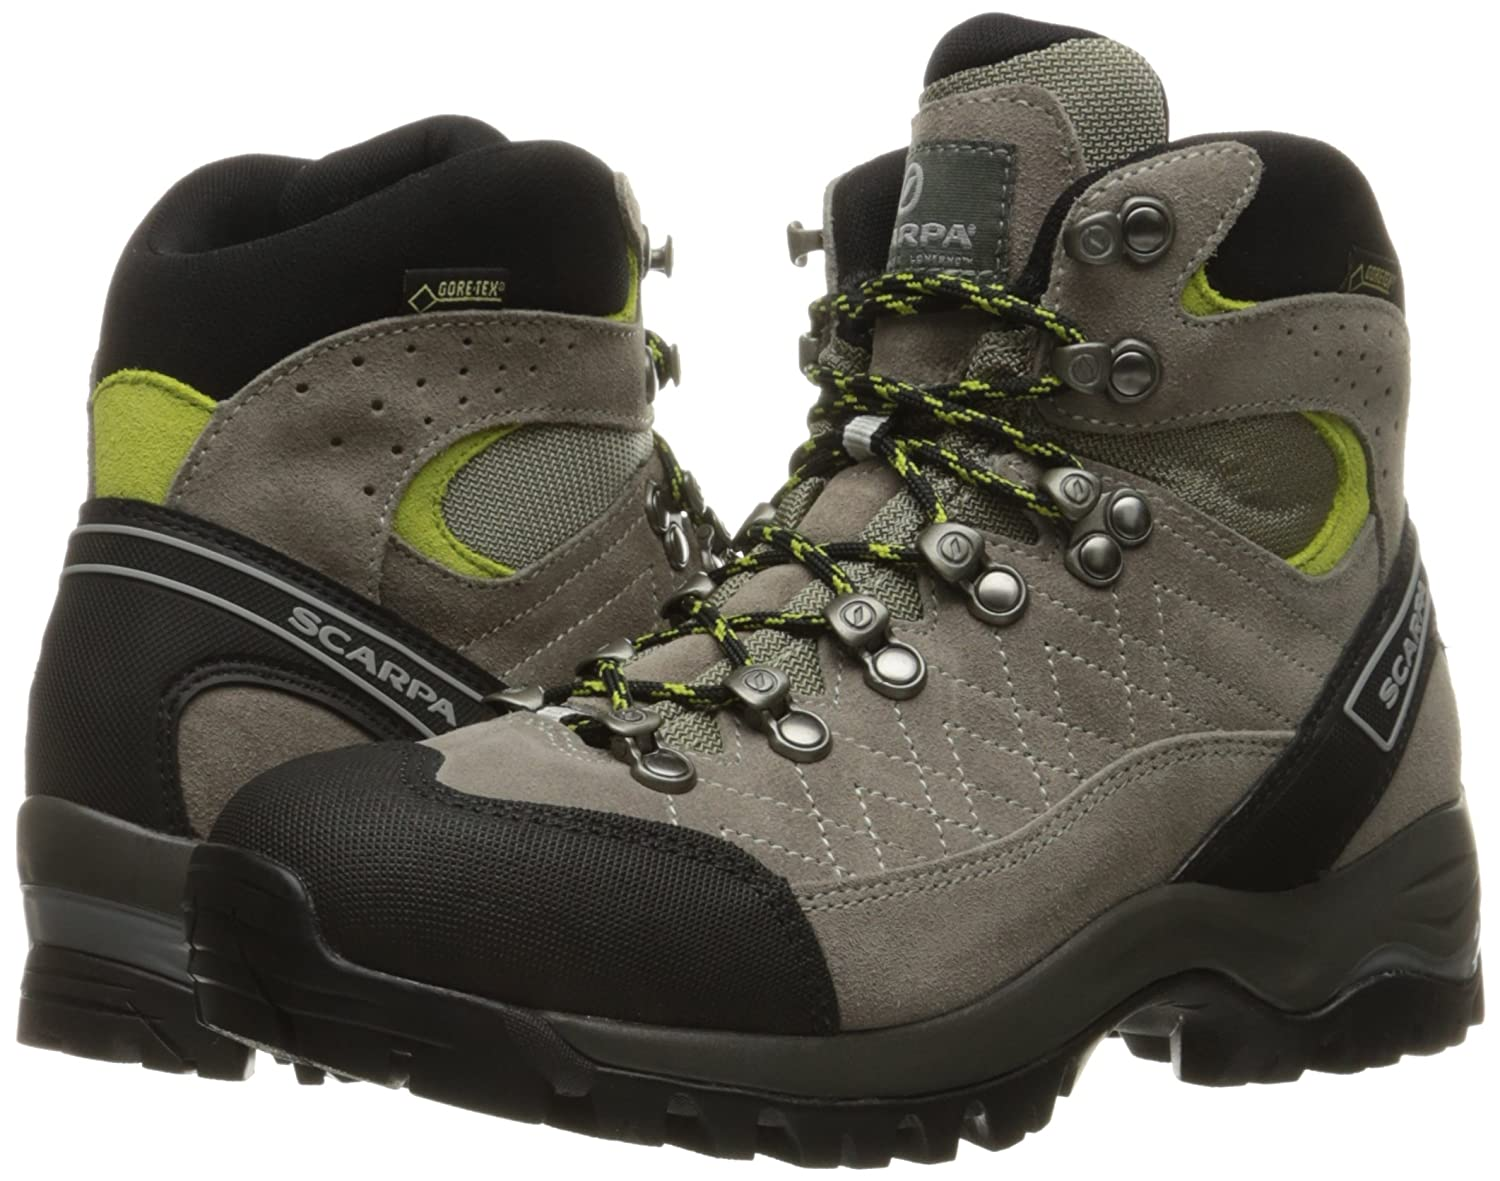 SCARPA Women's Kailash Gore-TEX Hiking Boot B00LM6NS6Y 39 M EU / 7.5 B(M) US|Taupe/Acid